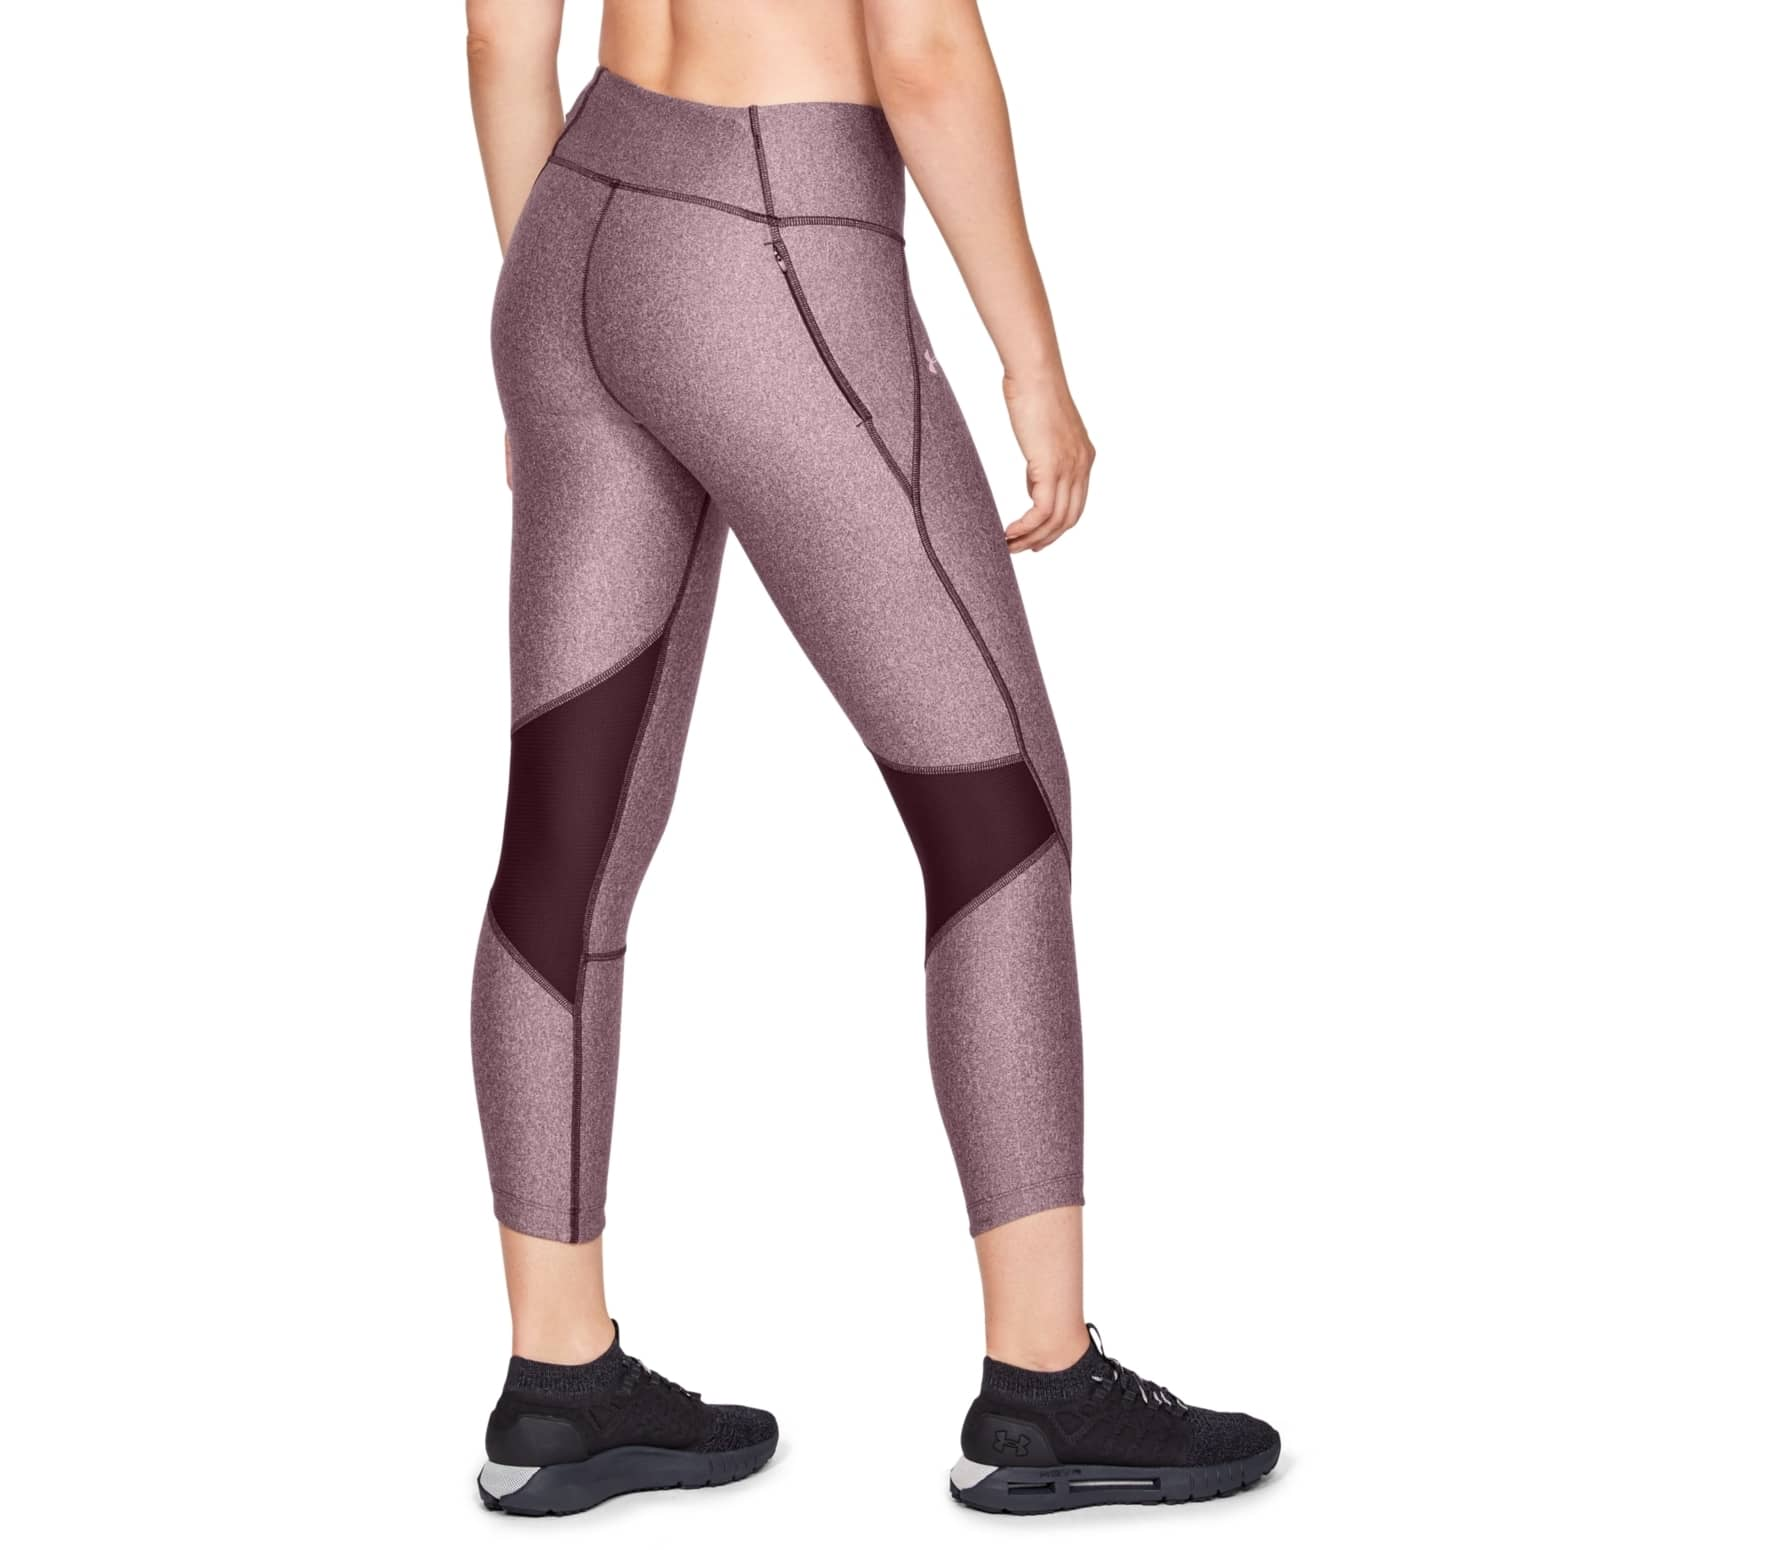 63a1986795d015 Under Armour - Armour Fly Fast women's running capri pants pants (dark red)